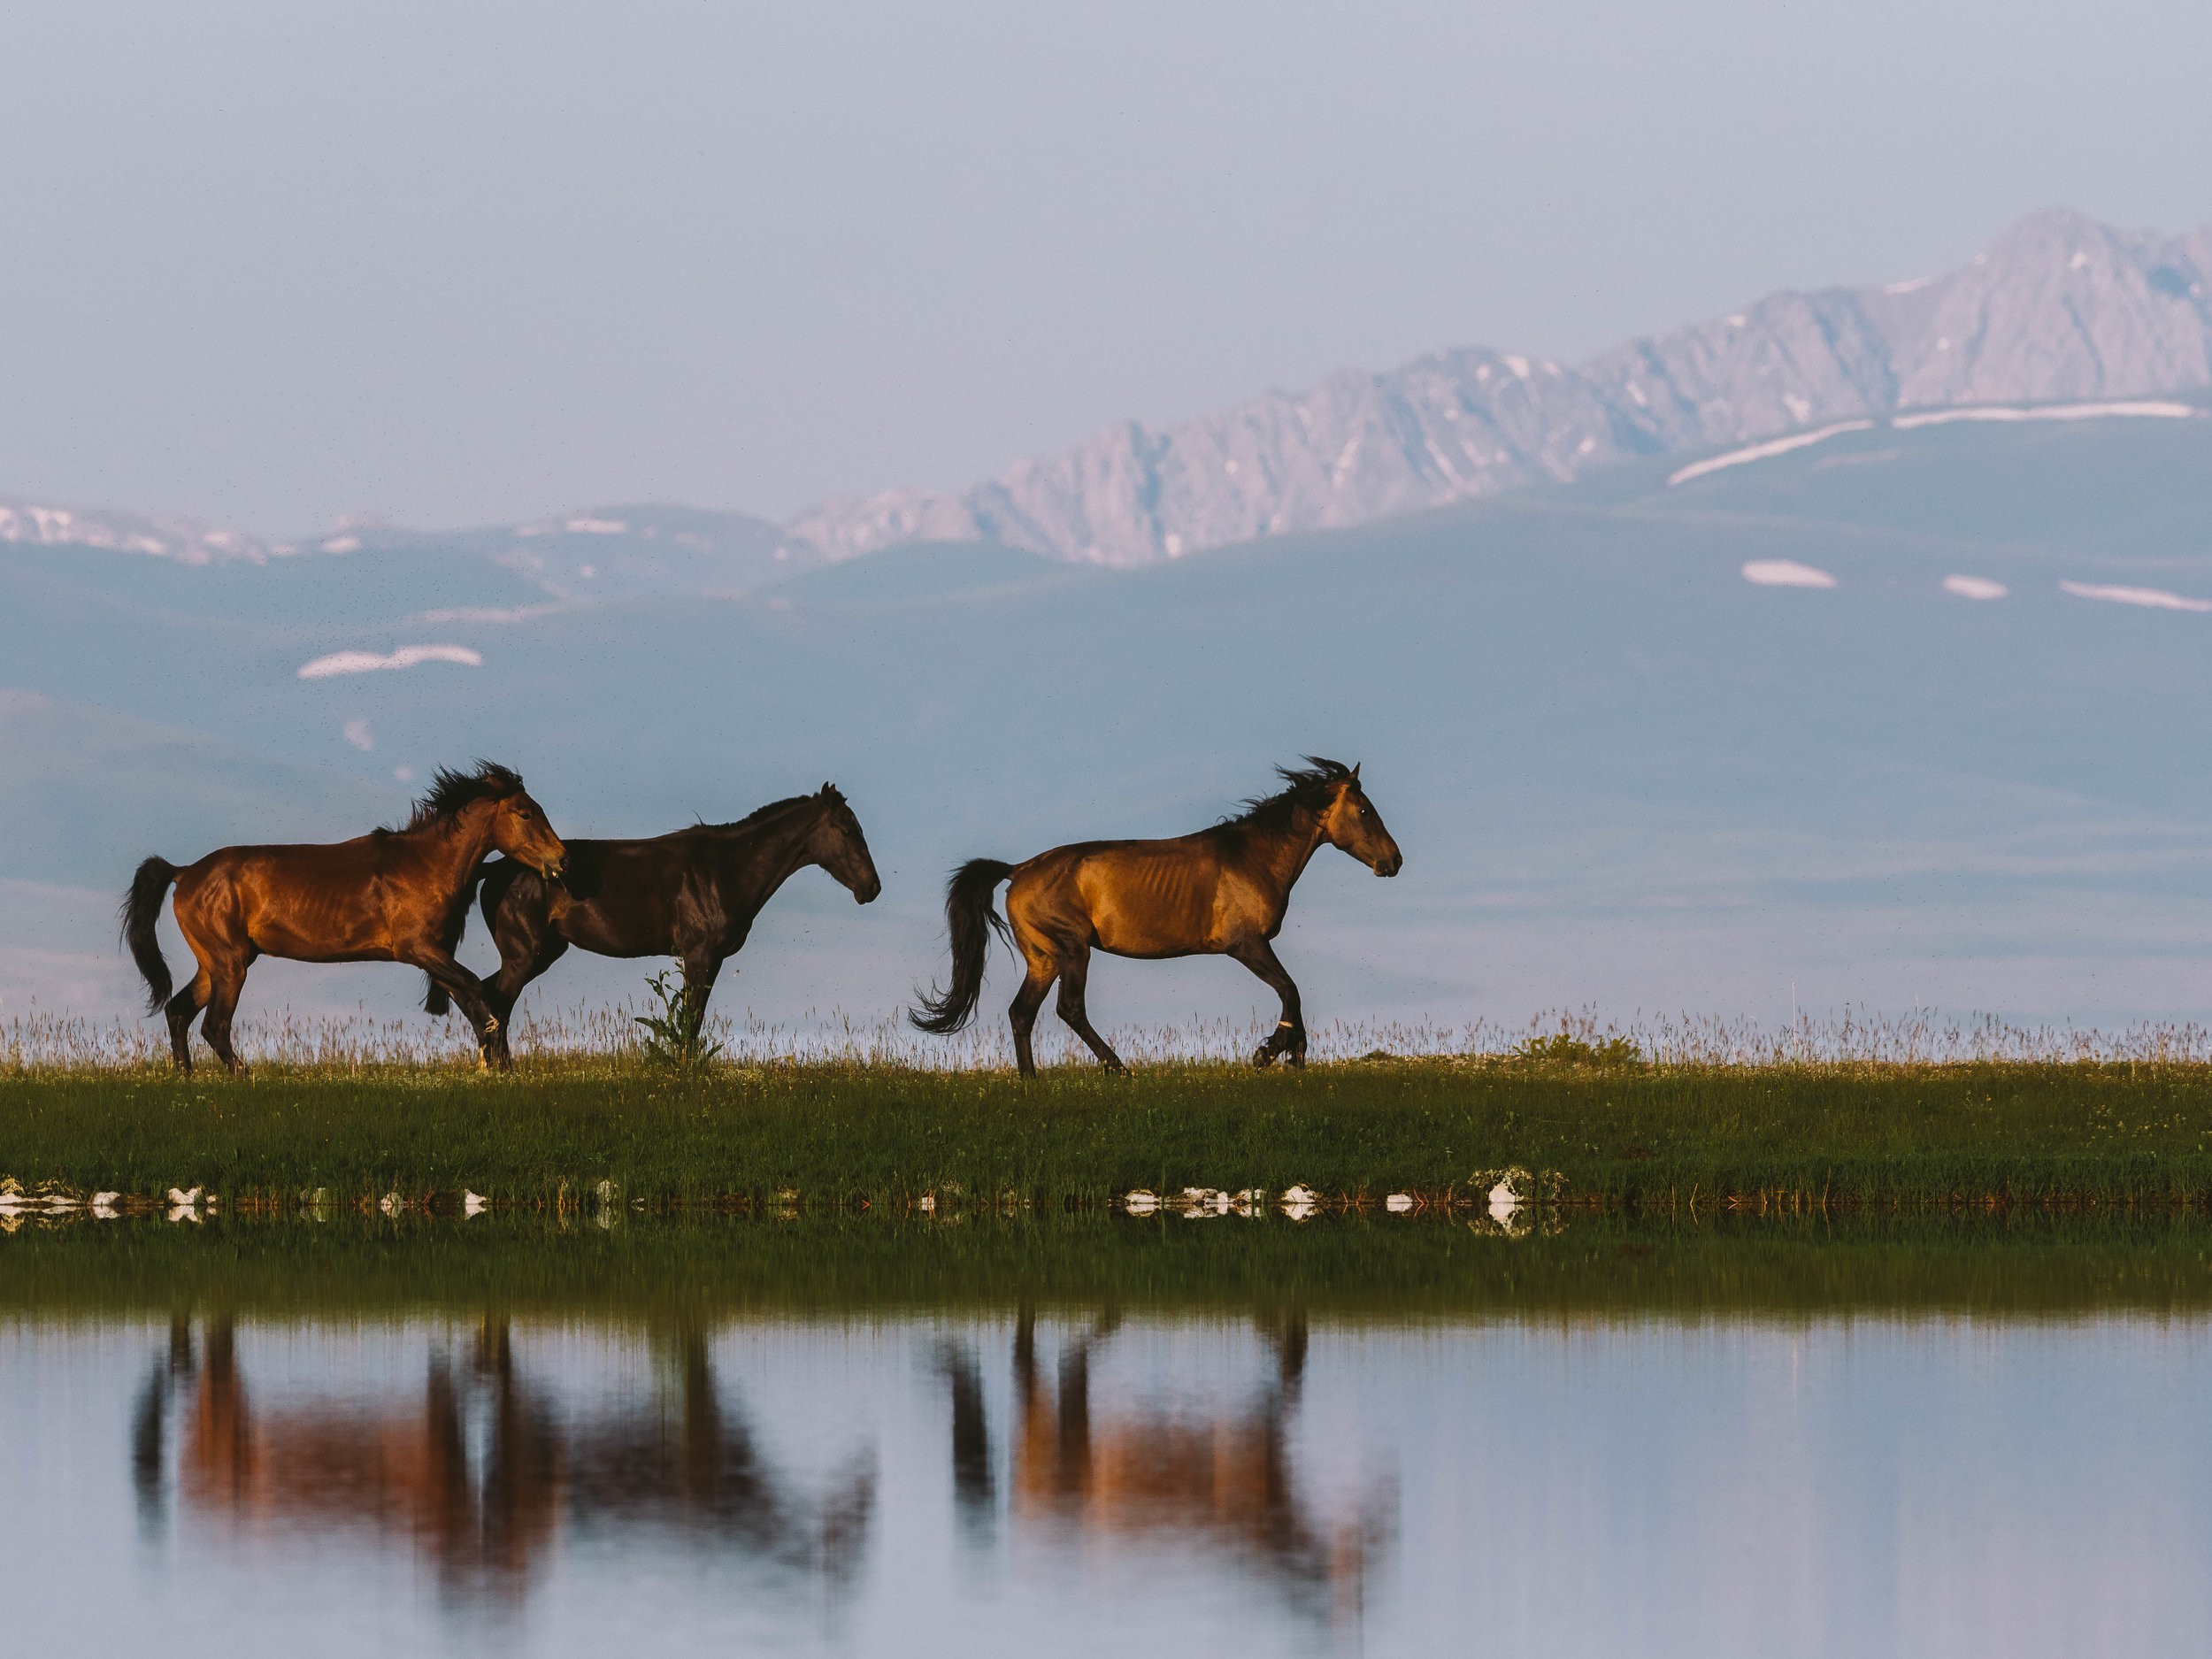 Almost Freedom - Three horses are shepherded along a grassy stretch of grass. Their feet are tied so they cannot run too far. Photo: Matt Horspool